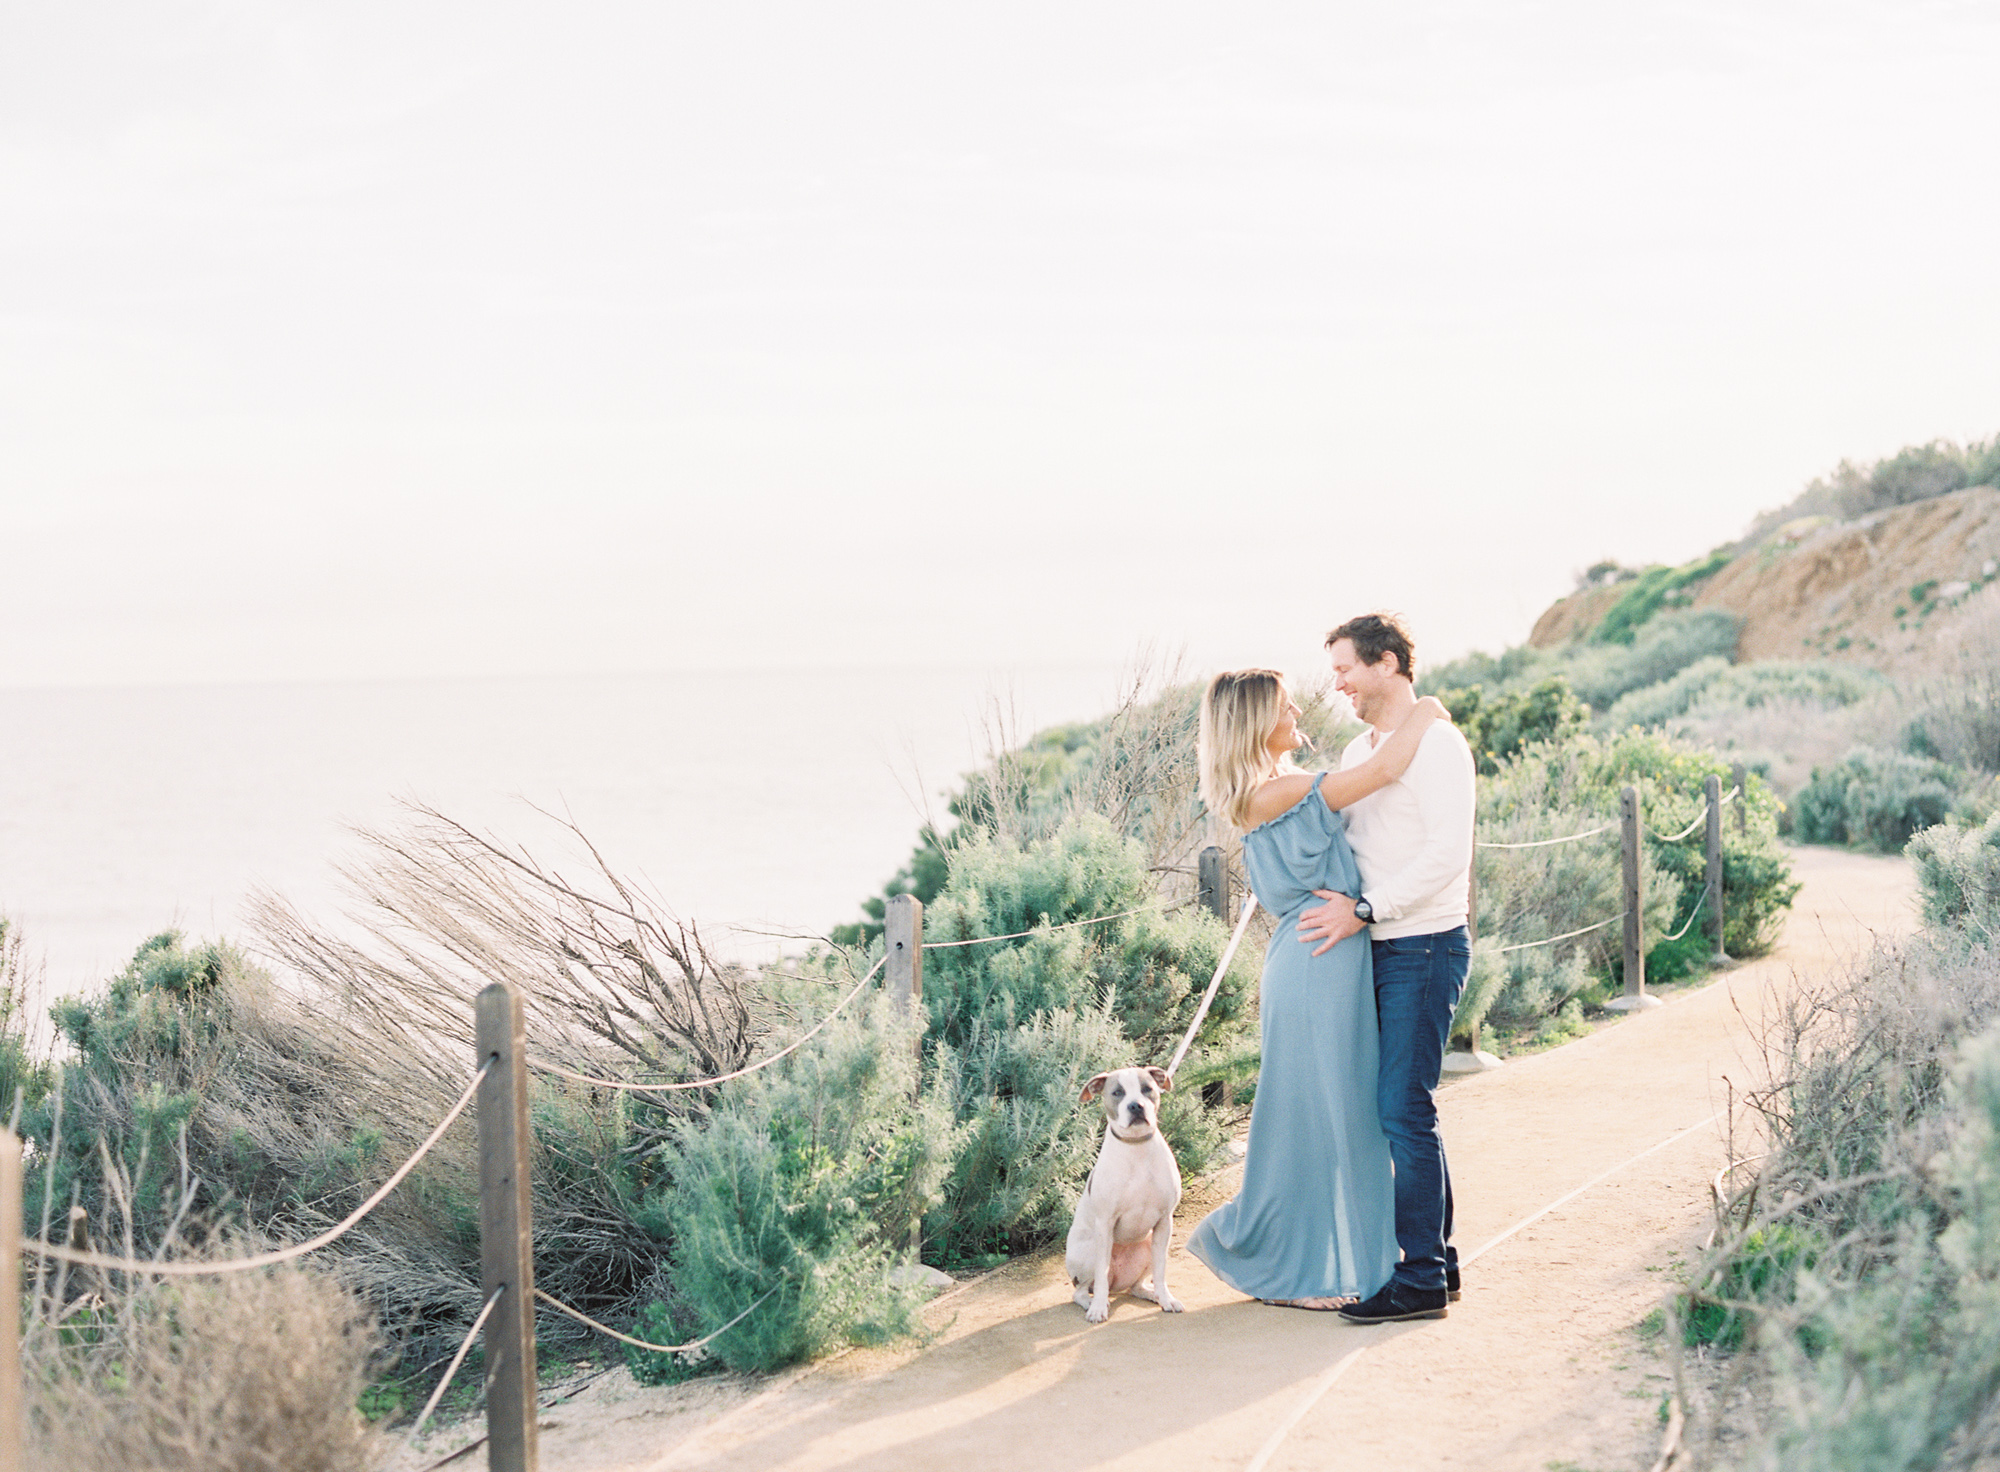 Terranea-engagement-session-los-angeles-22-2.jpg